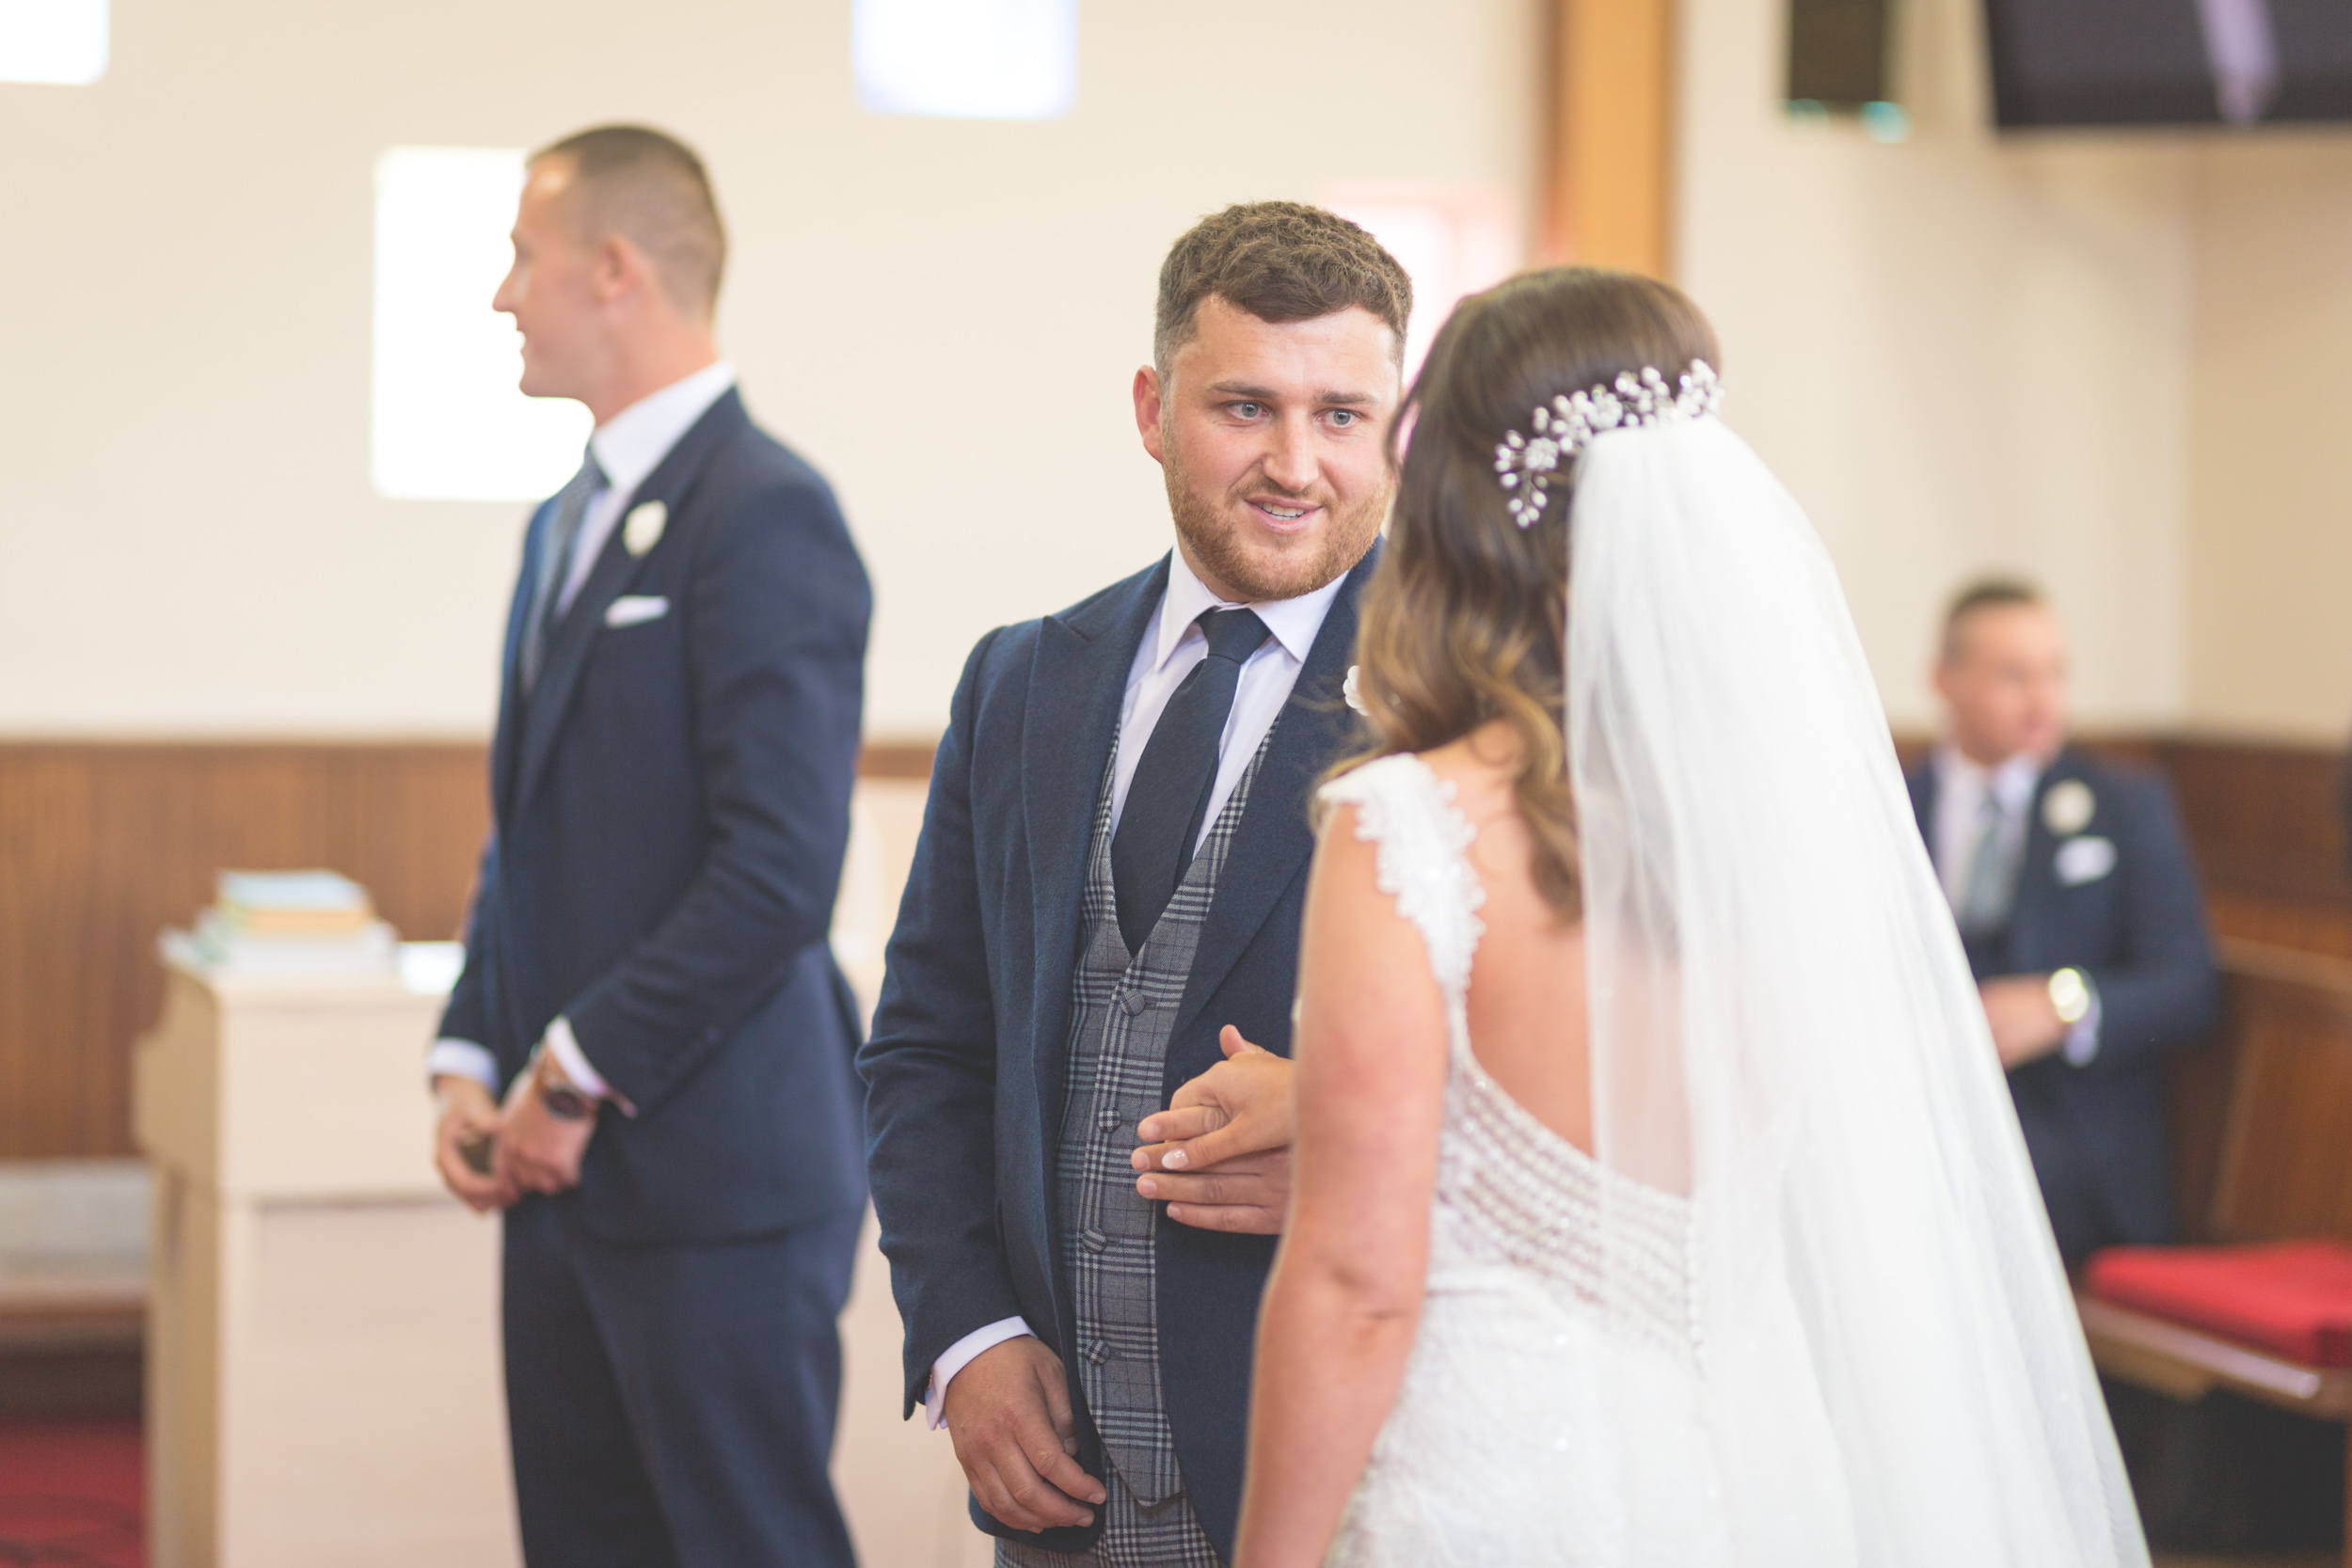 Brian McEwan | Northern Ireland Wedding Photographer | Rebecca & Michael | Ceremony-30.jpg